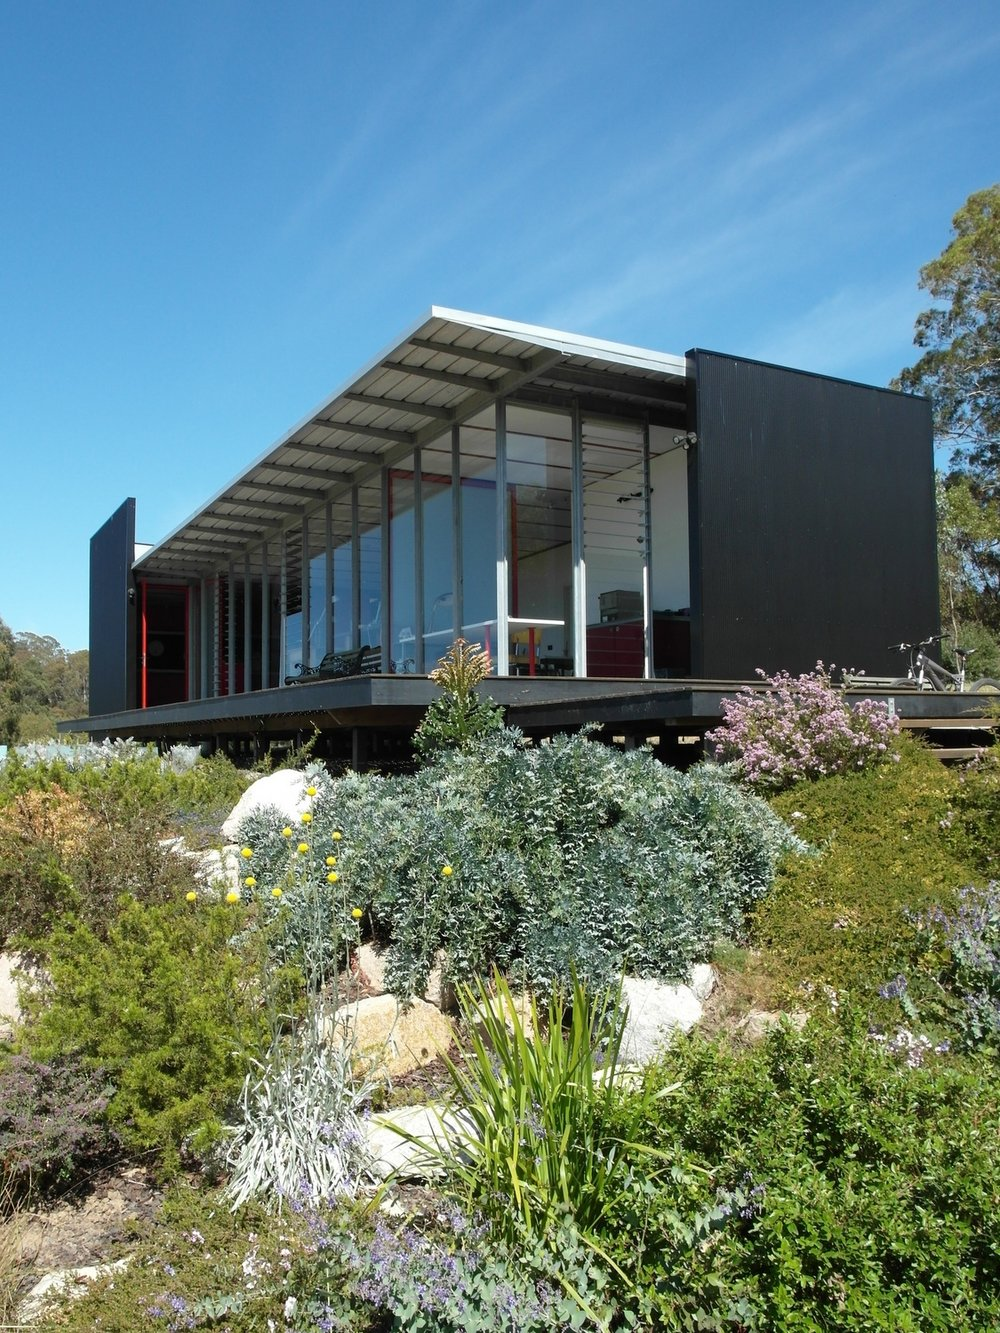 our beautiful studio in Nungurner, East Gippsland